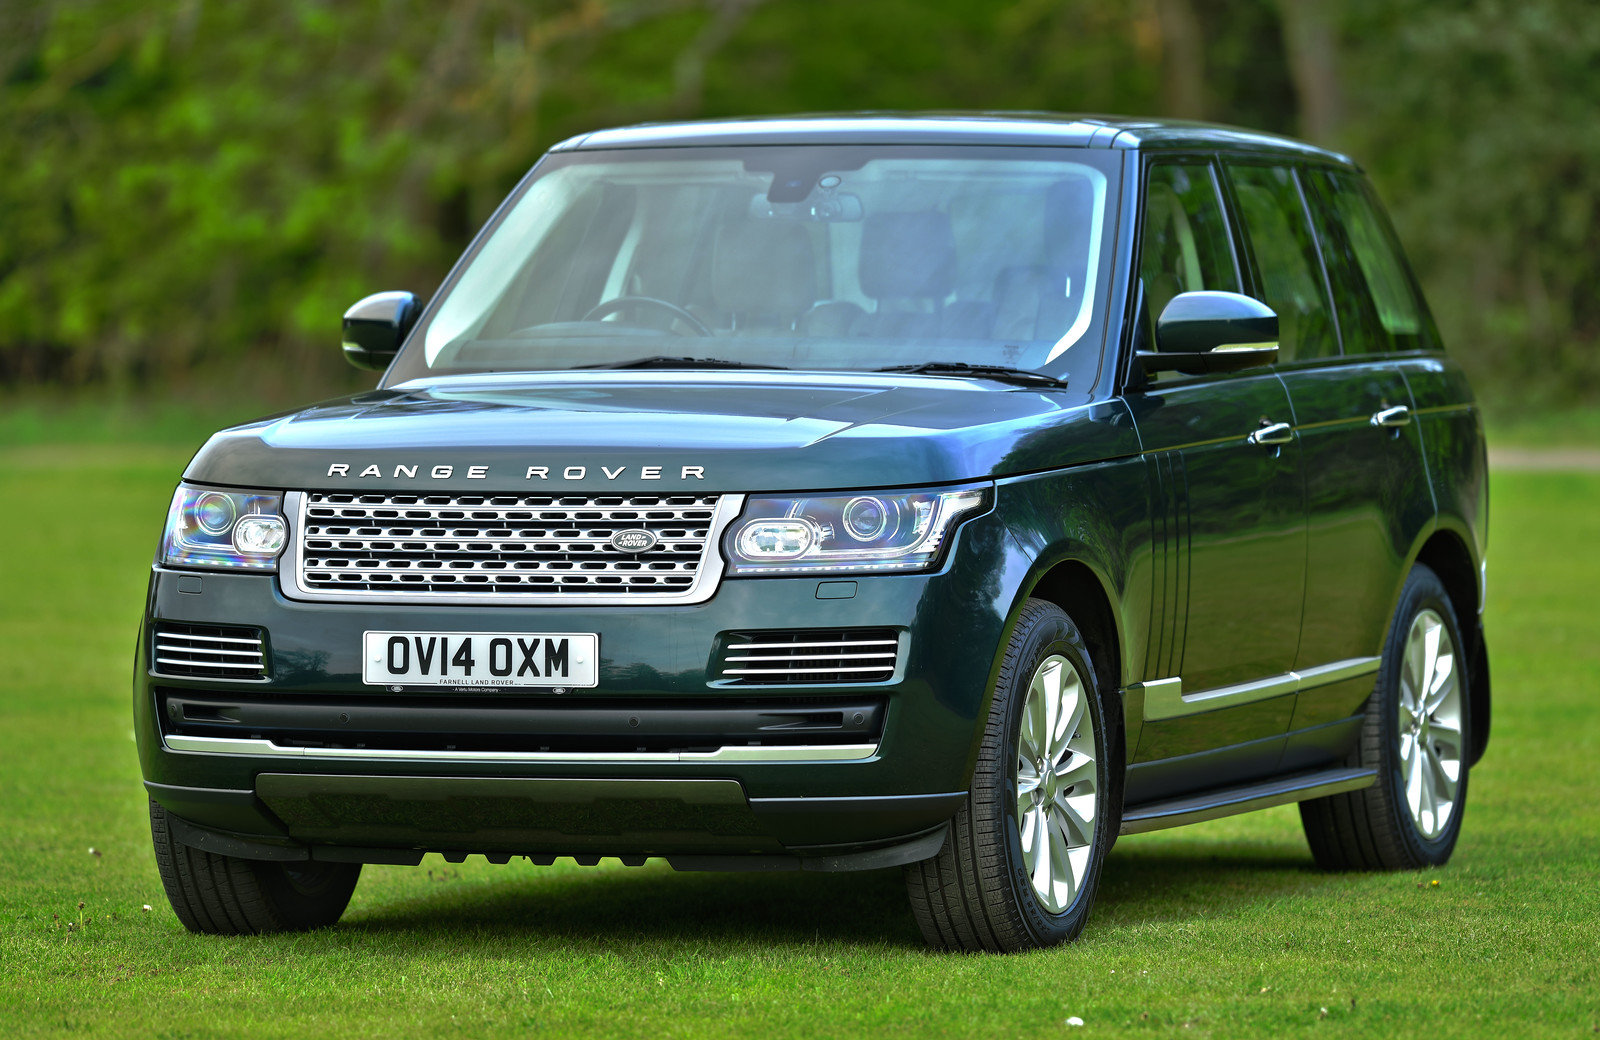 2014  LAND ROVER RANGE ROVER 4.4 SDV8 VOGUE SE 5DR AUTOMATIC SOLD (picture 1 of 6)